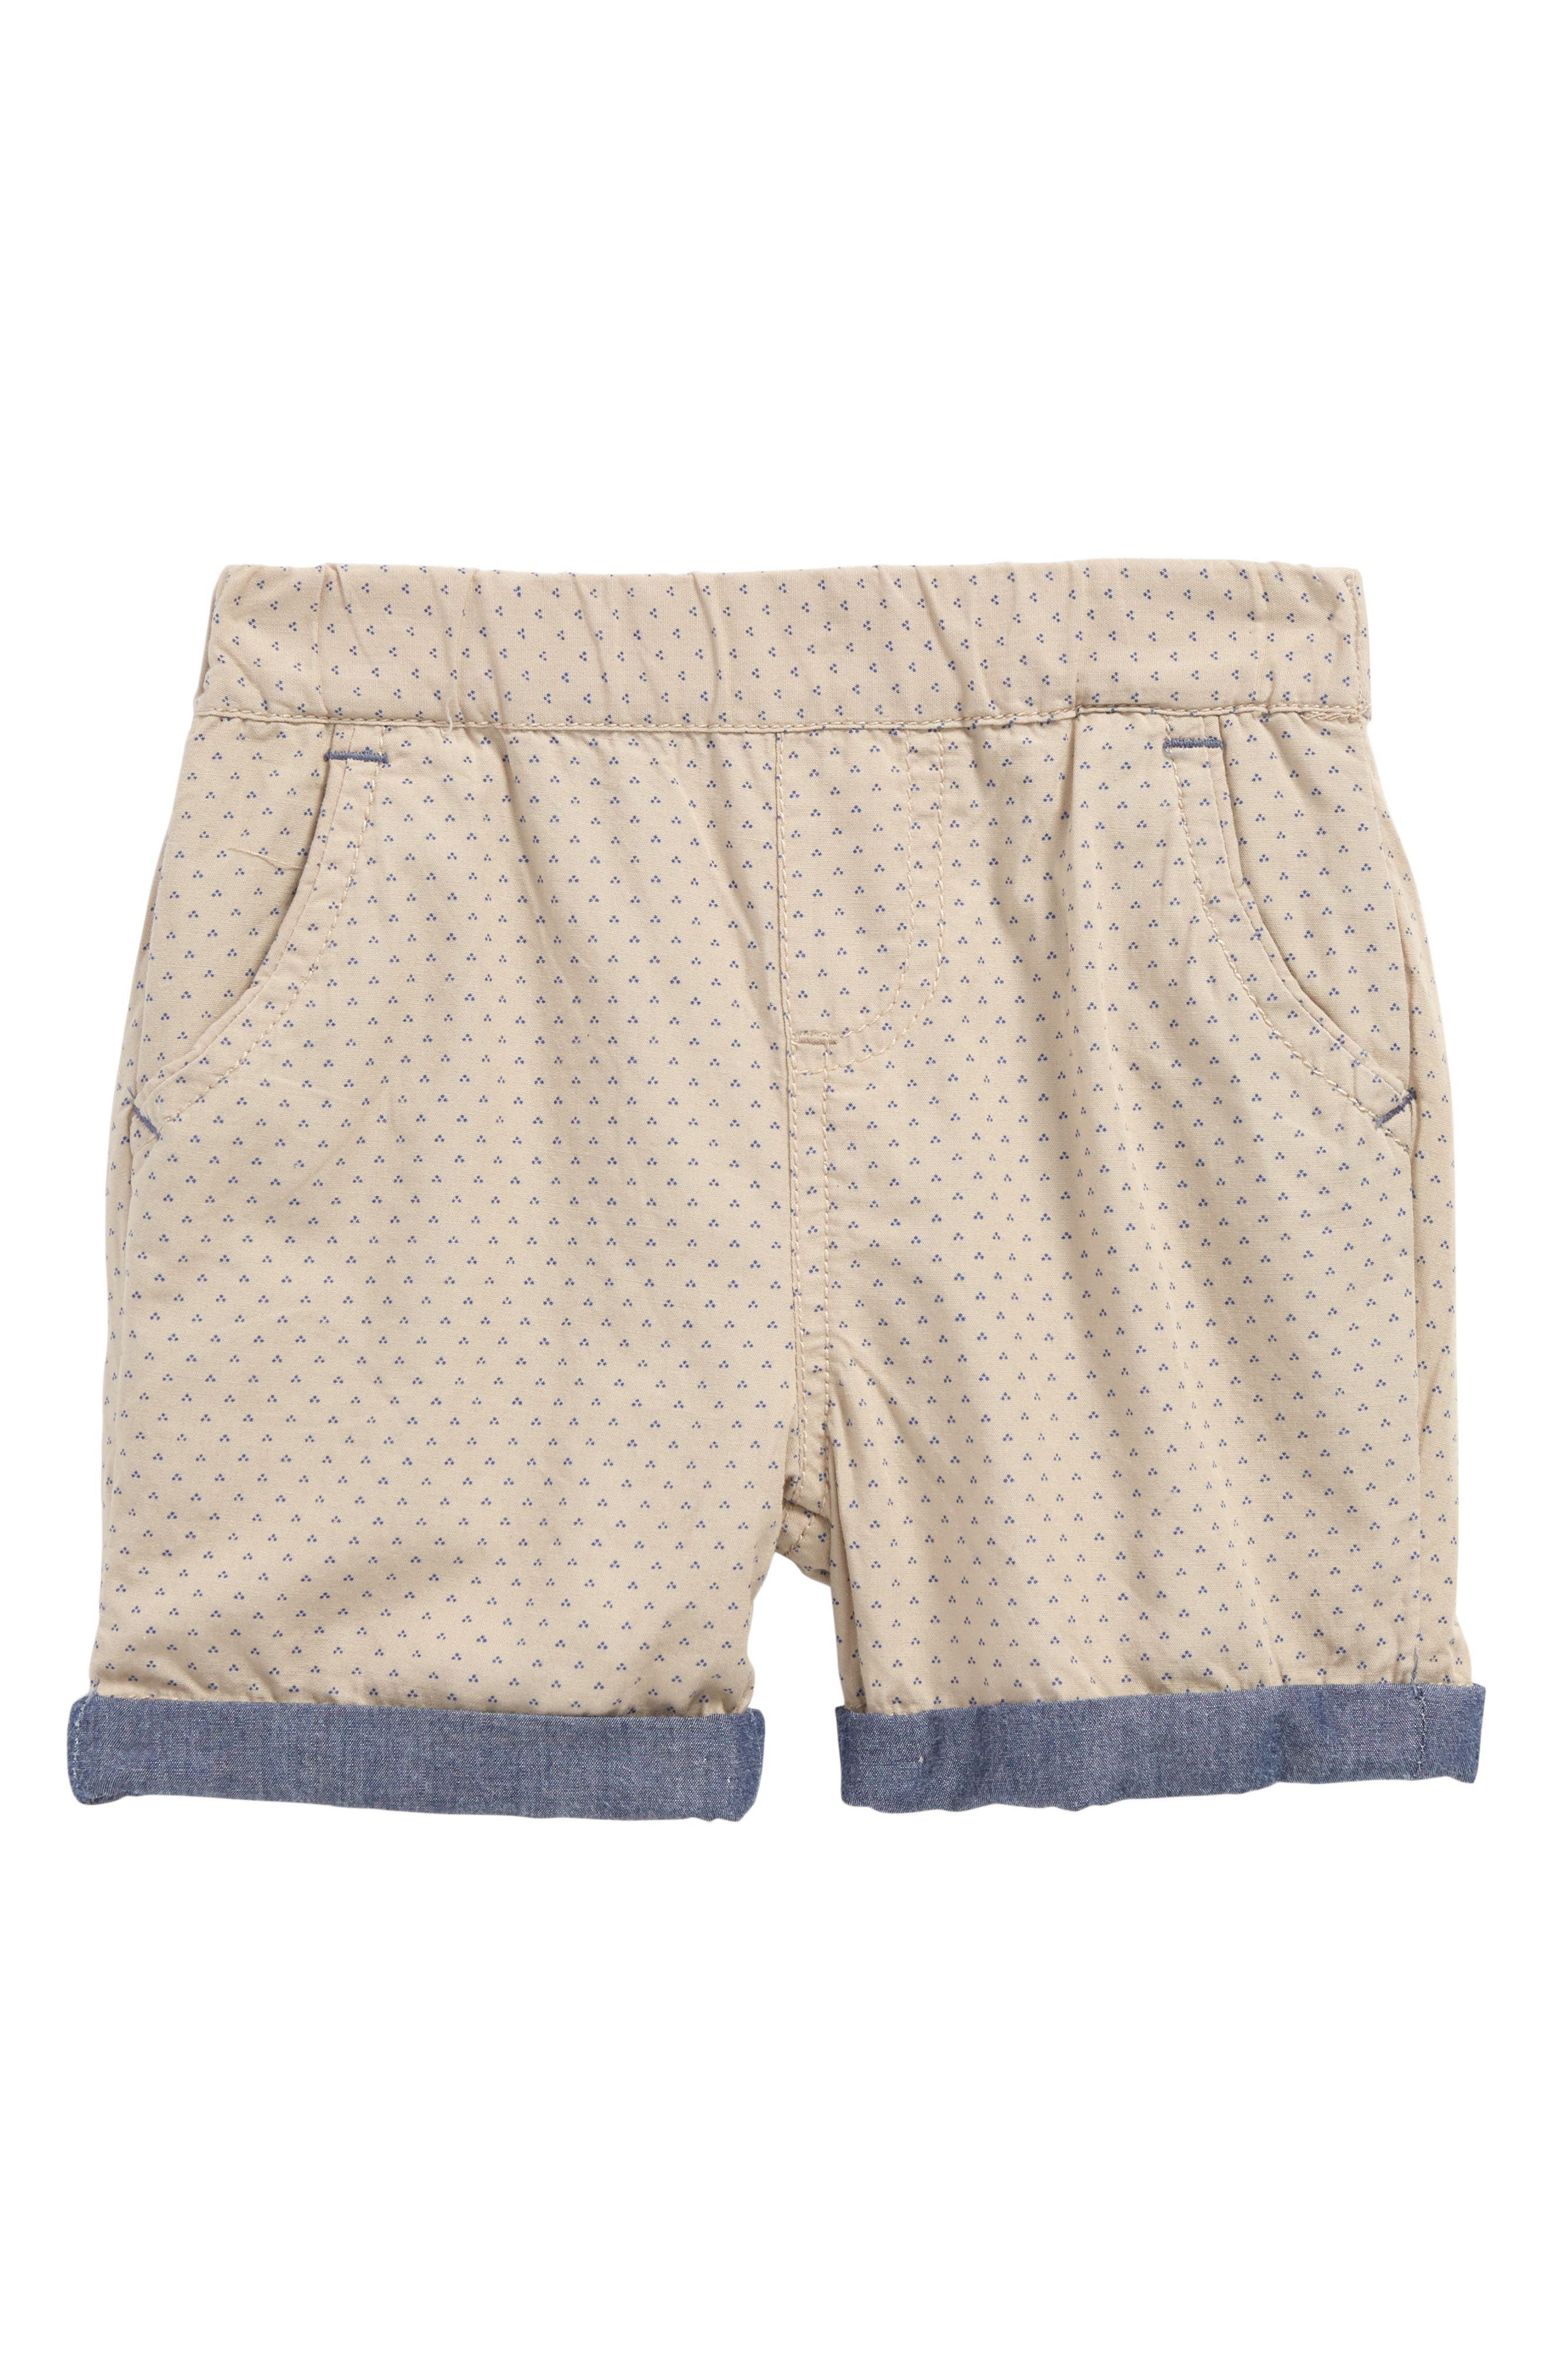 Drew Shorts,                             Main thumbnail 1, color,                             Khaki